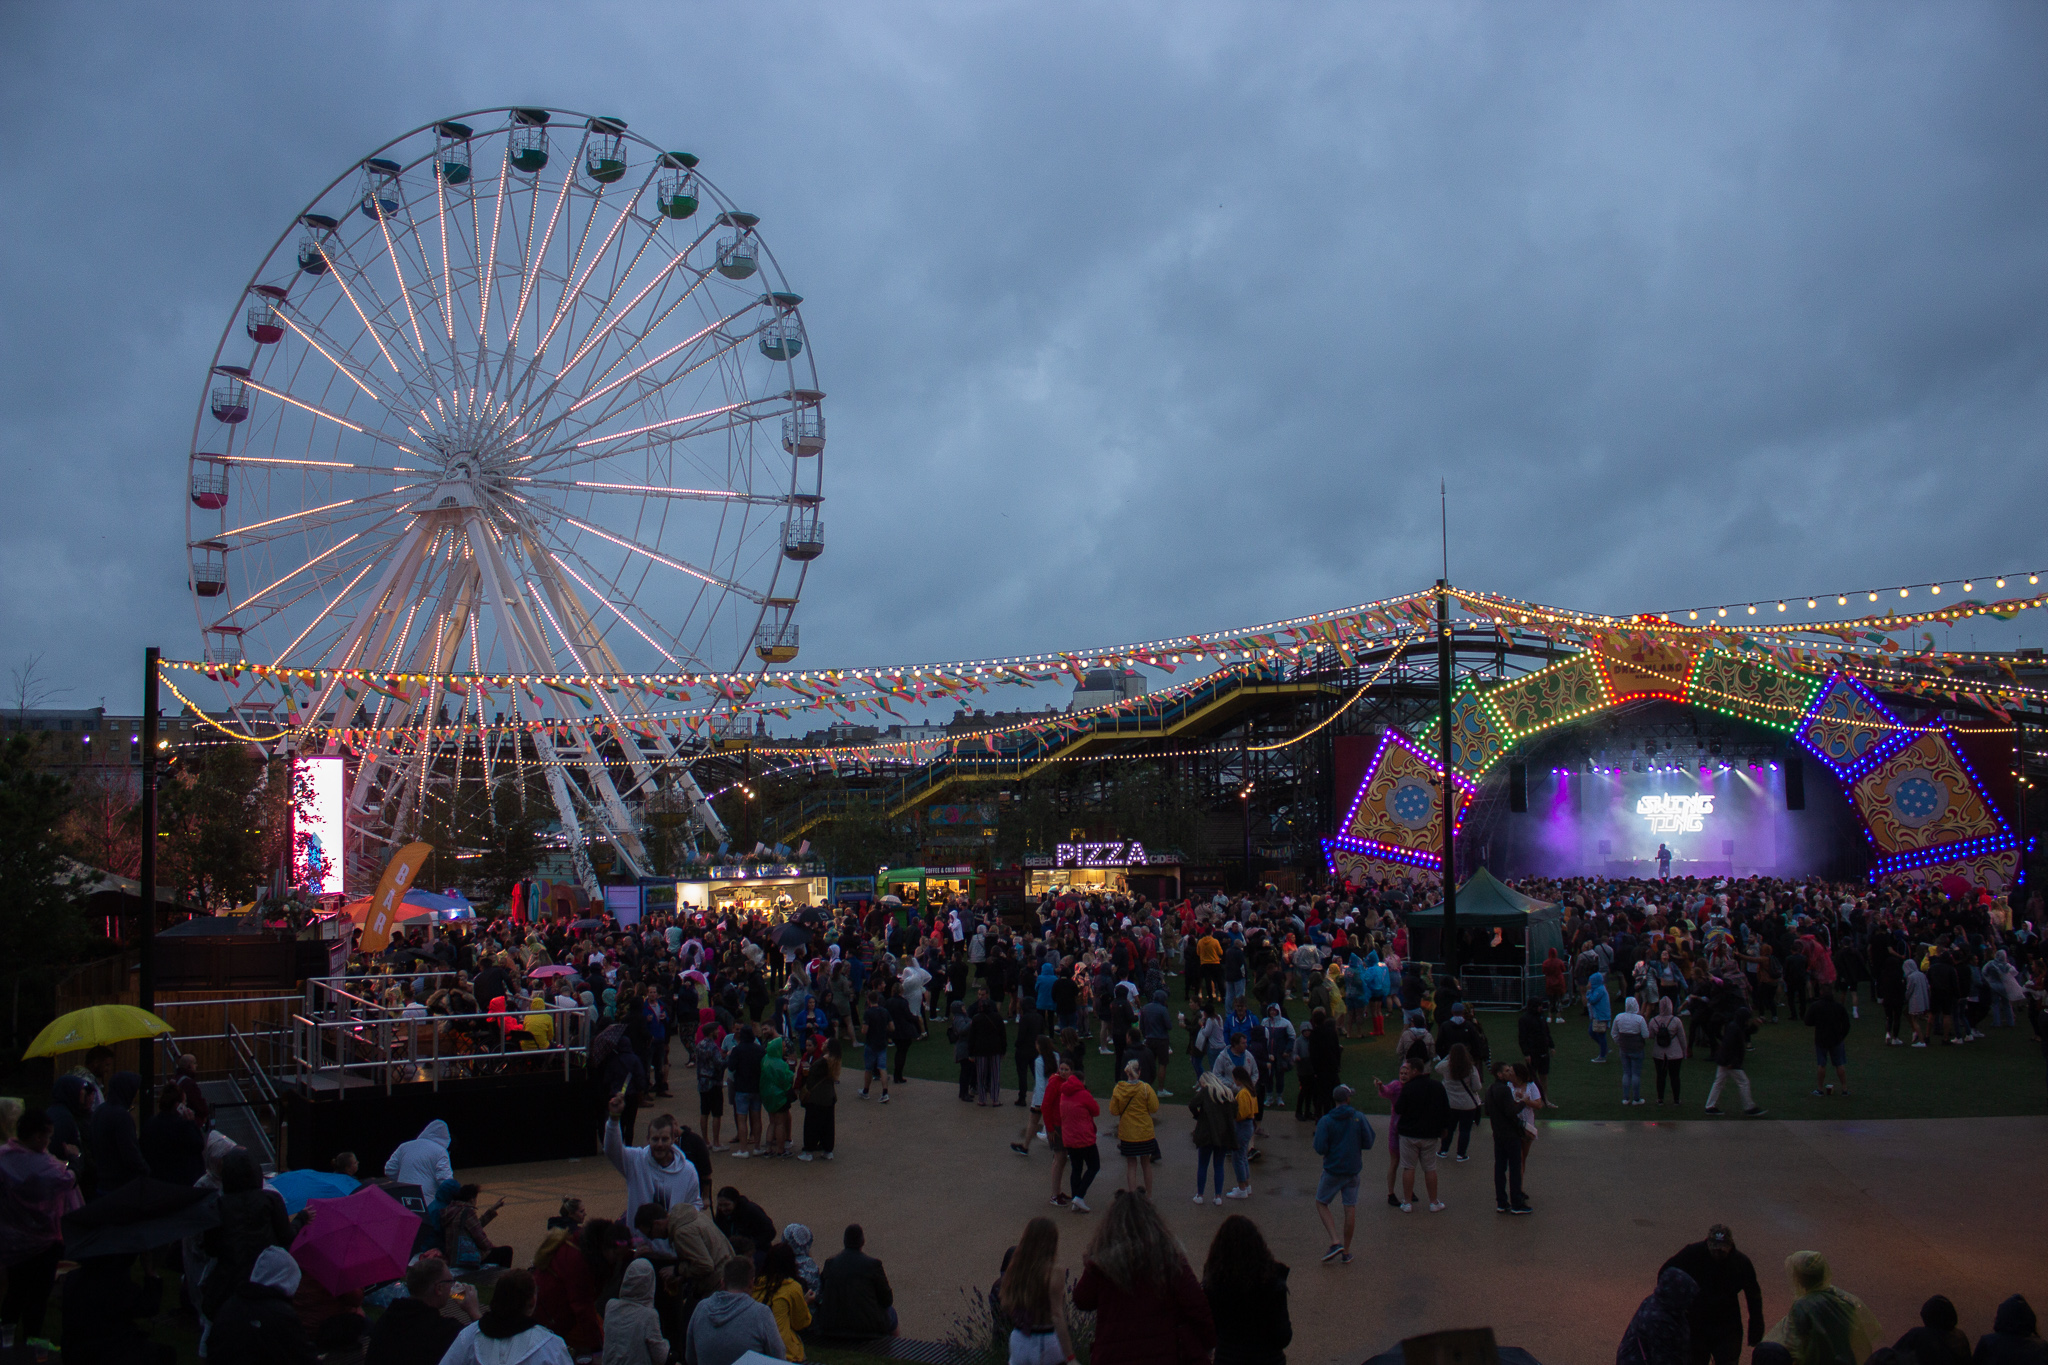 Fair ground and stage in the evening